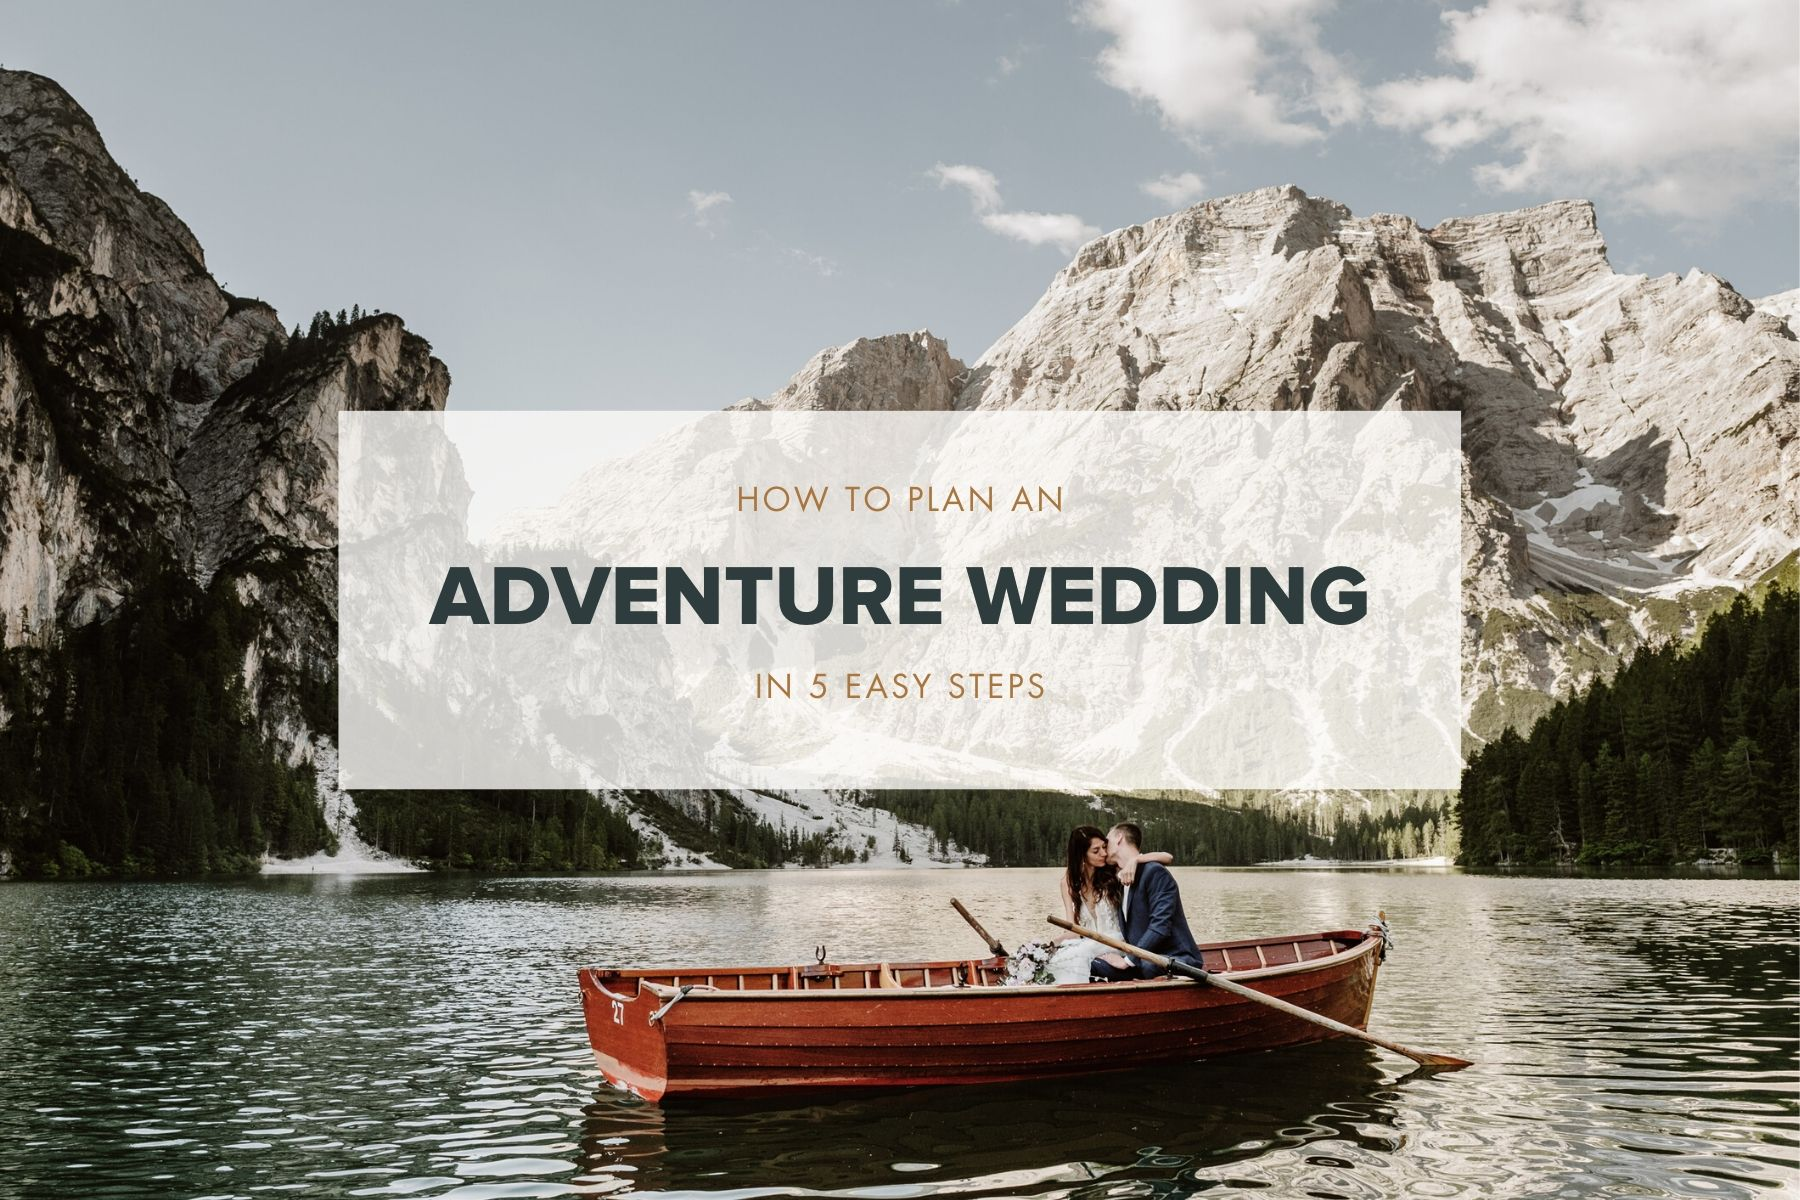 how to plan an adventure wedding in 5 easy steps guide